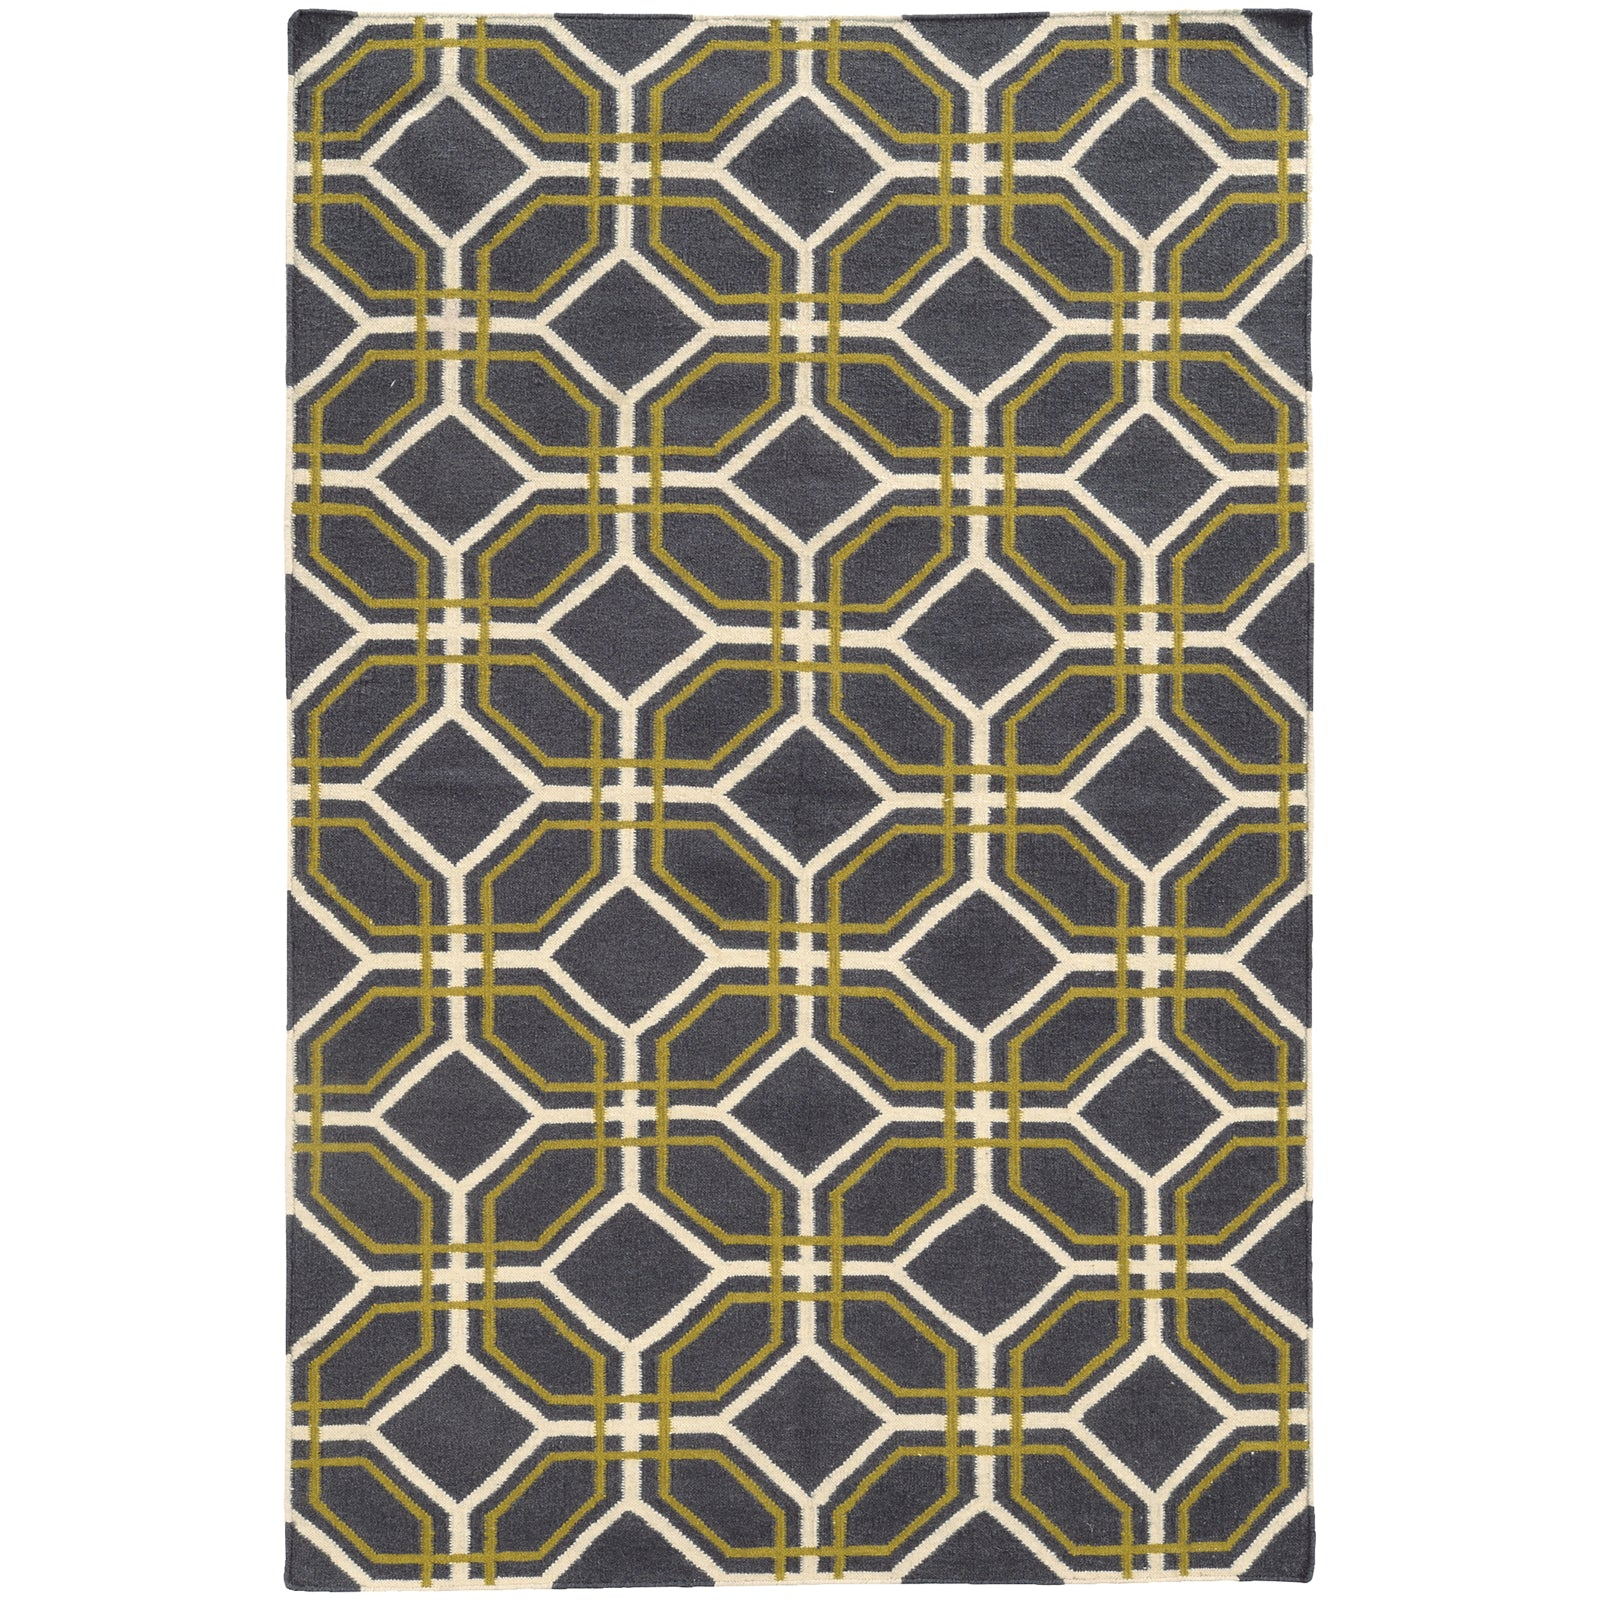 Pantone Universe Matrix 4722E Charcoal/Green Area Rug main image